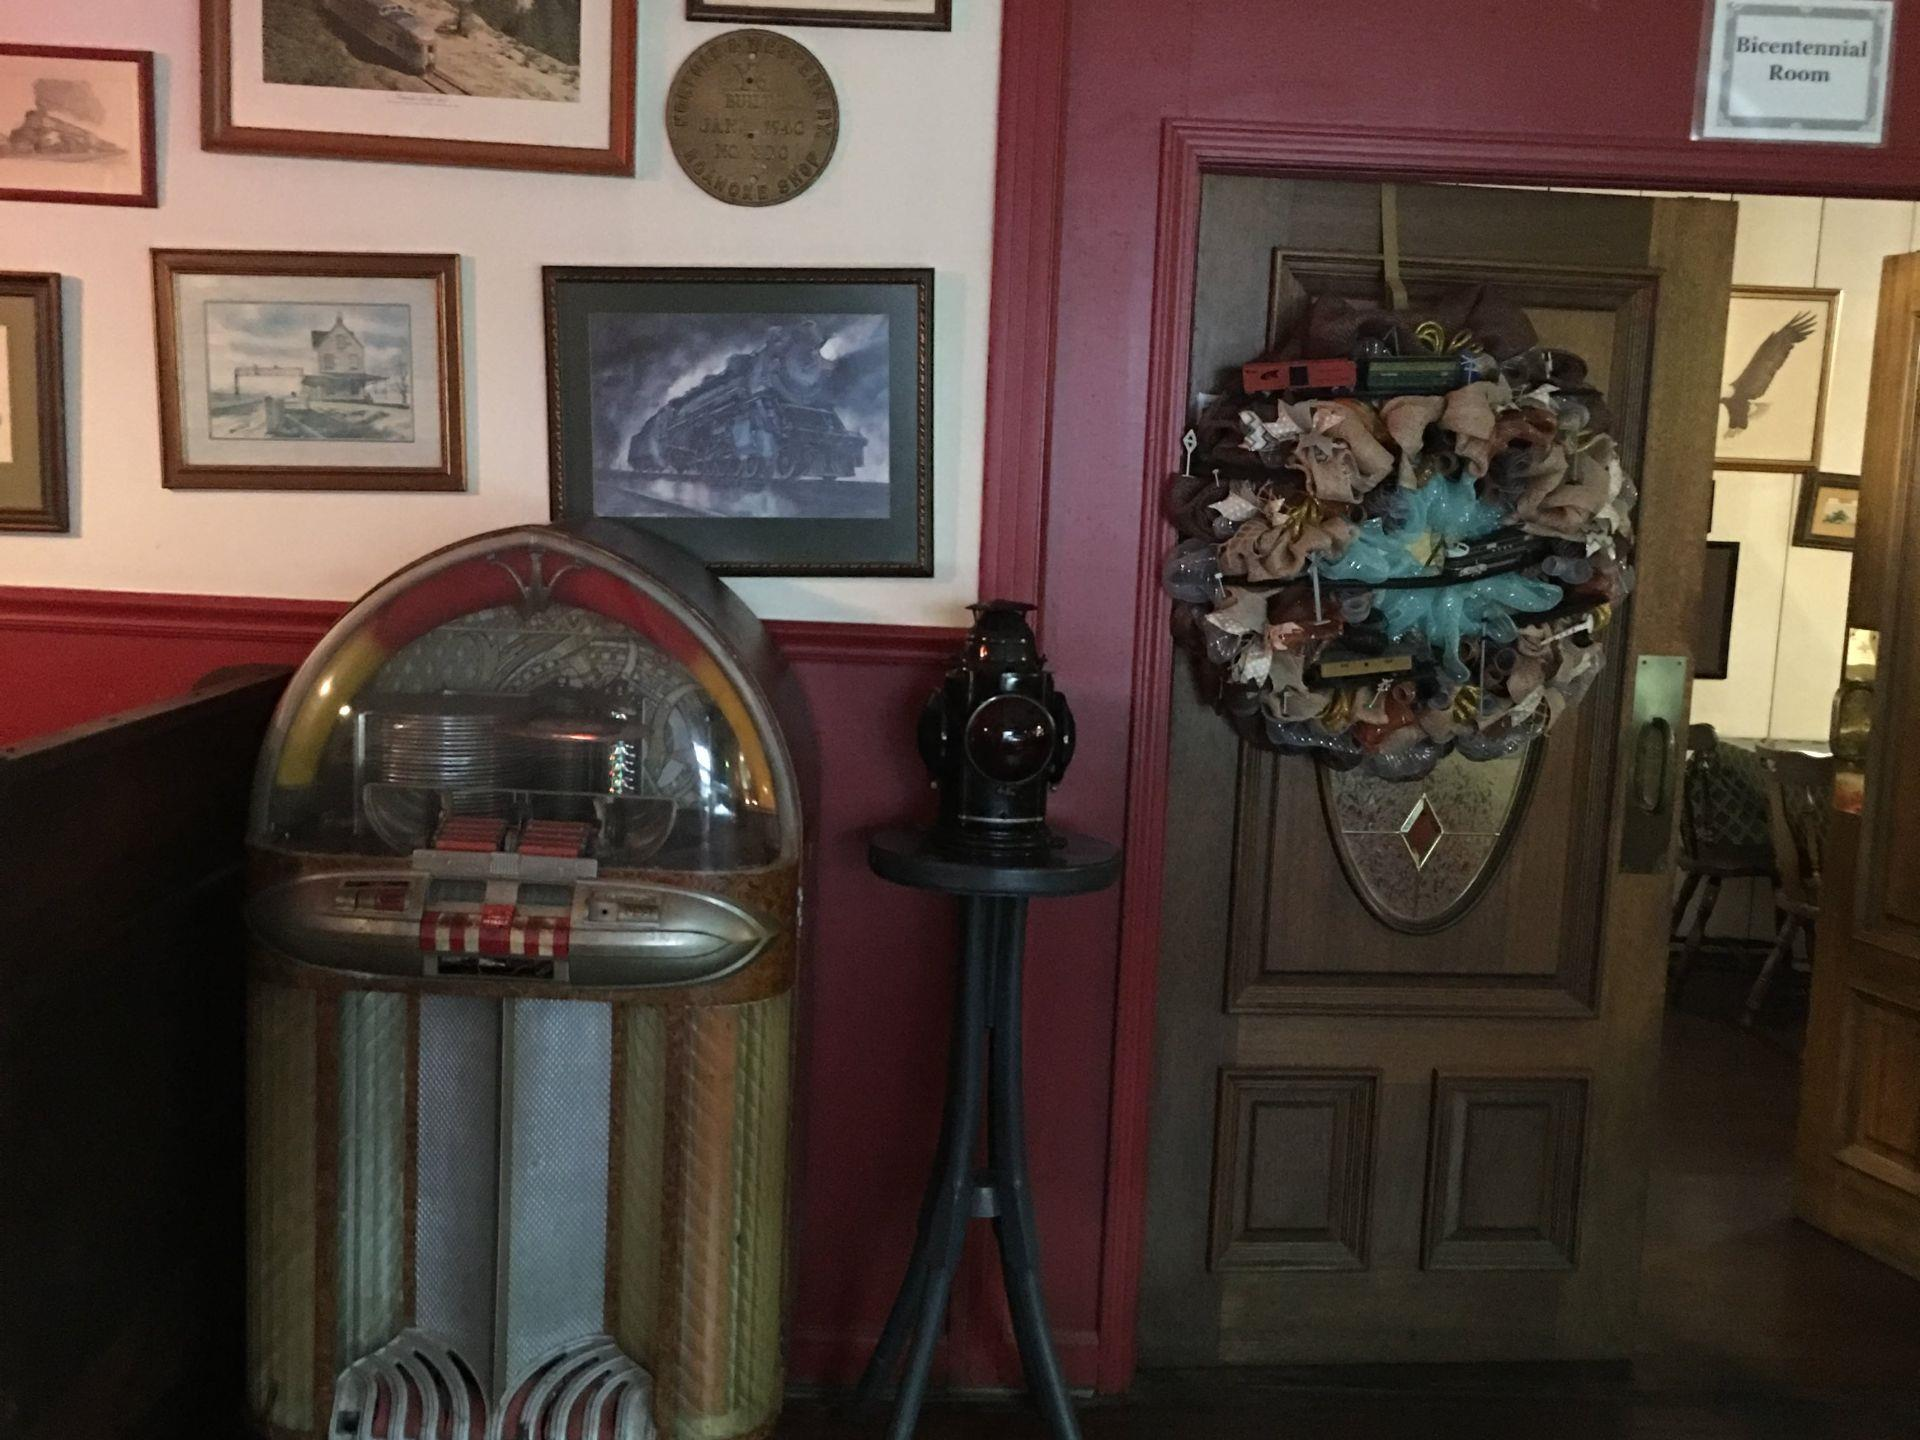 Old style jukebox in front of a wall with pictures hanging on the wall